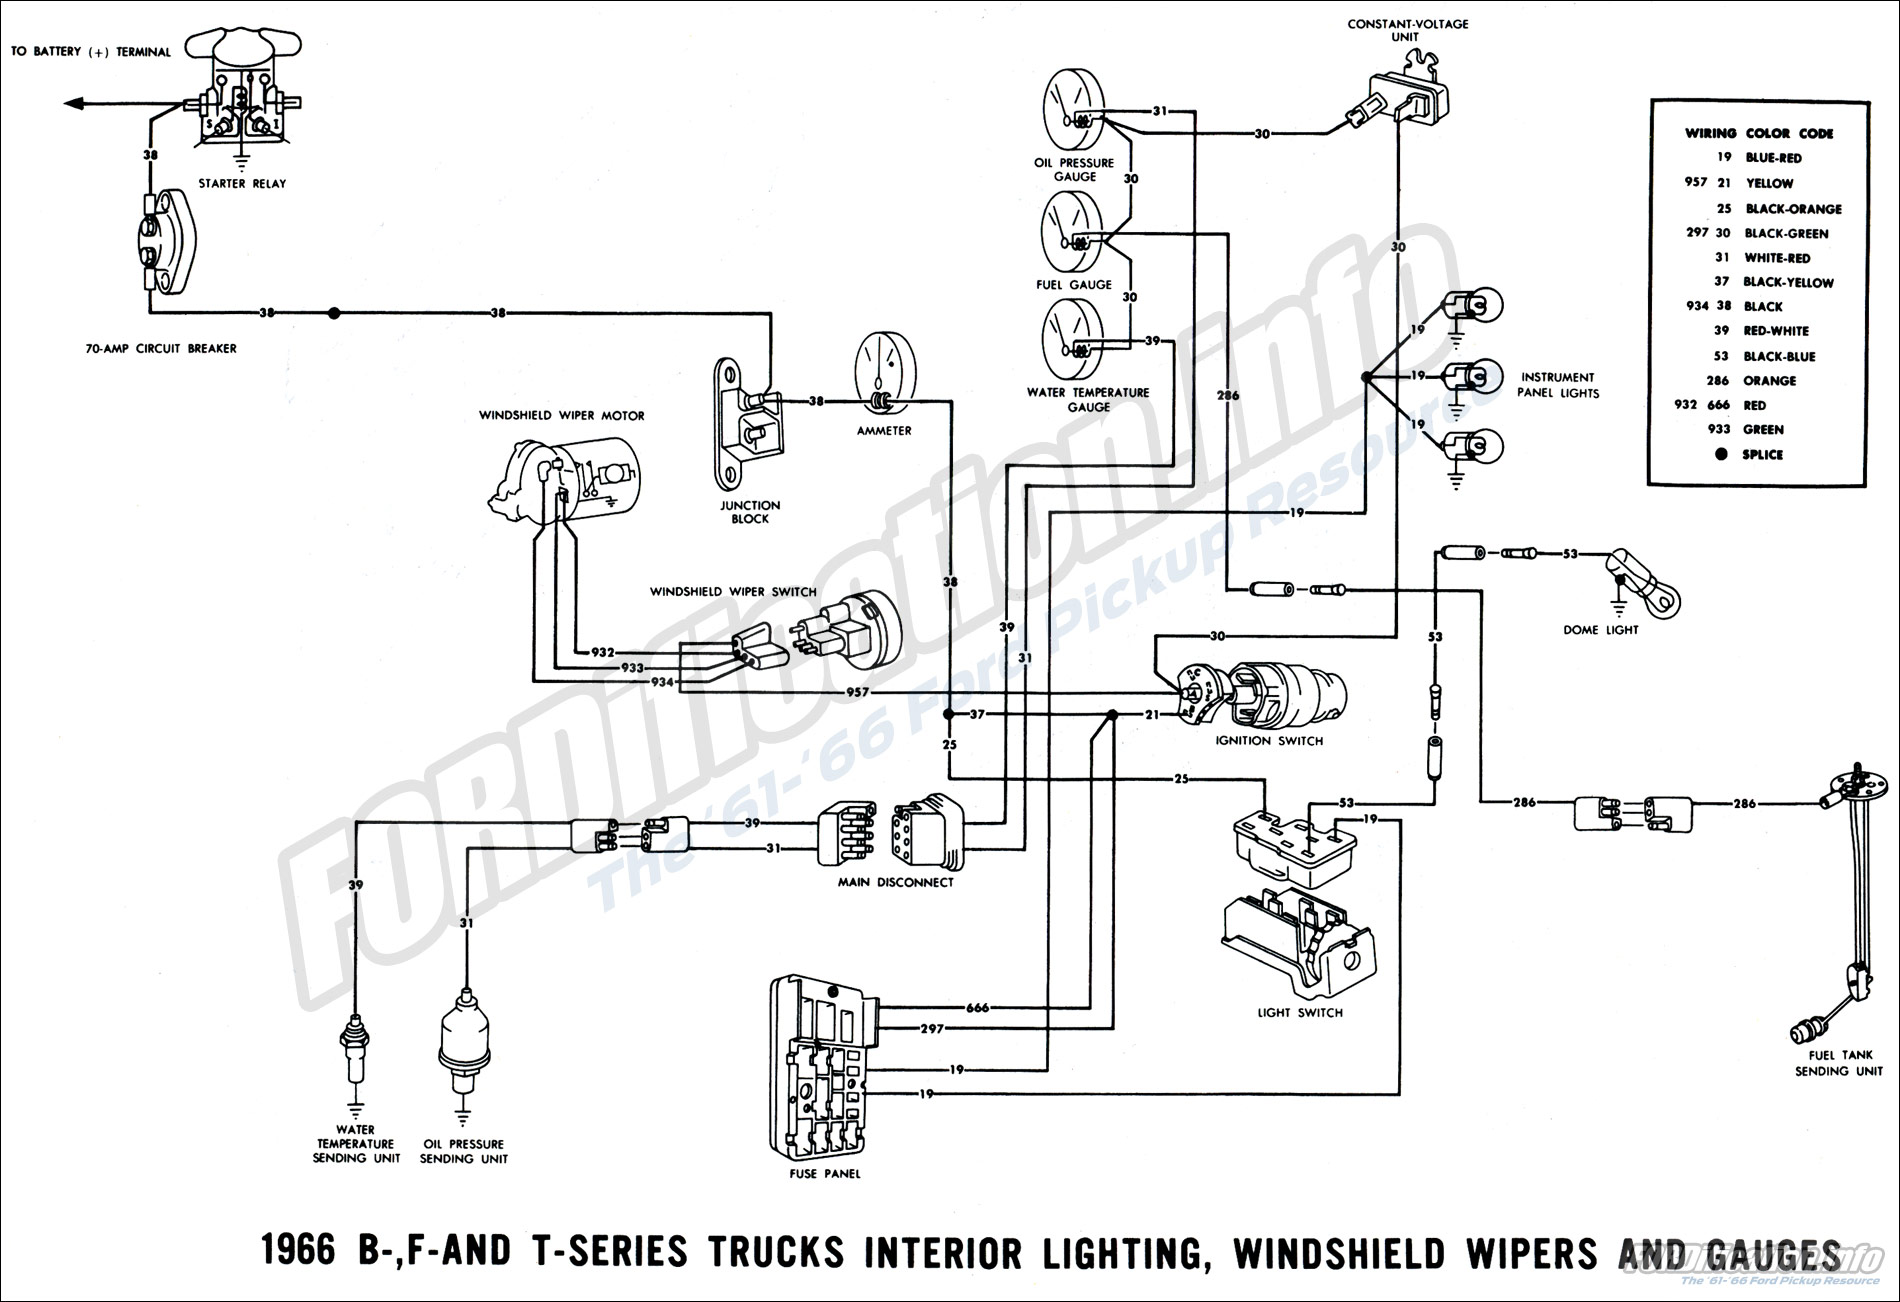 66 f100 wiring diagram   22 wiring diagram images